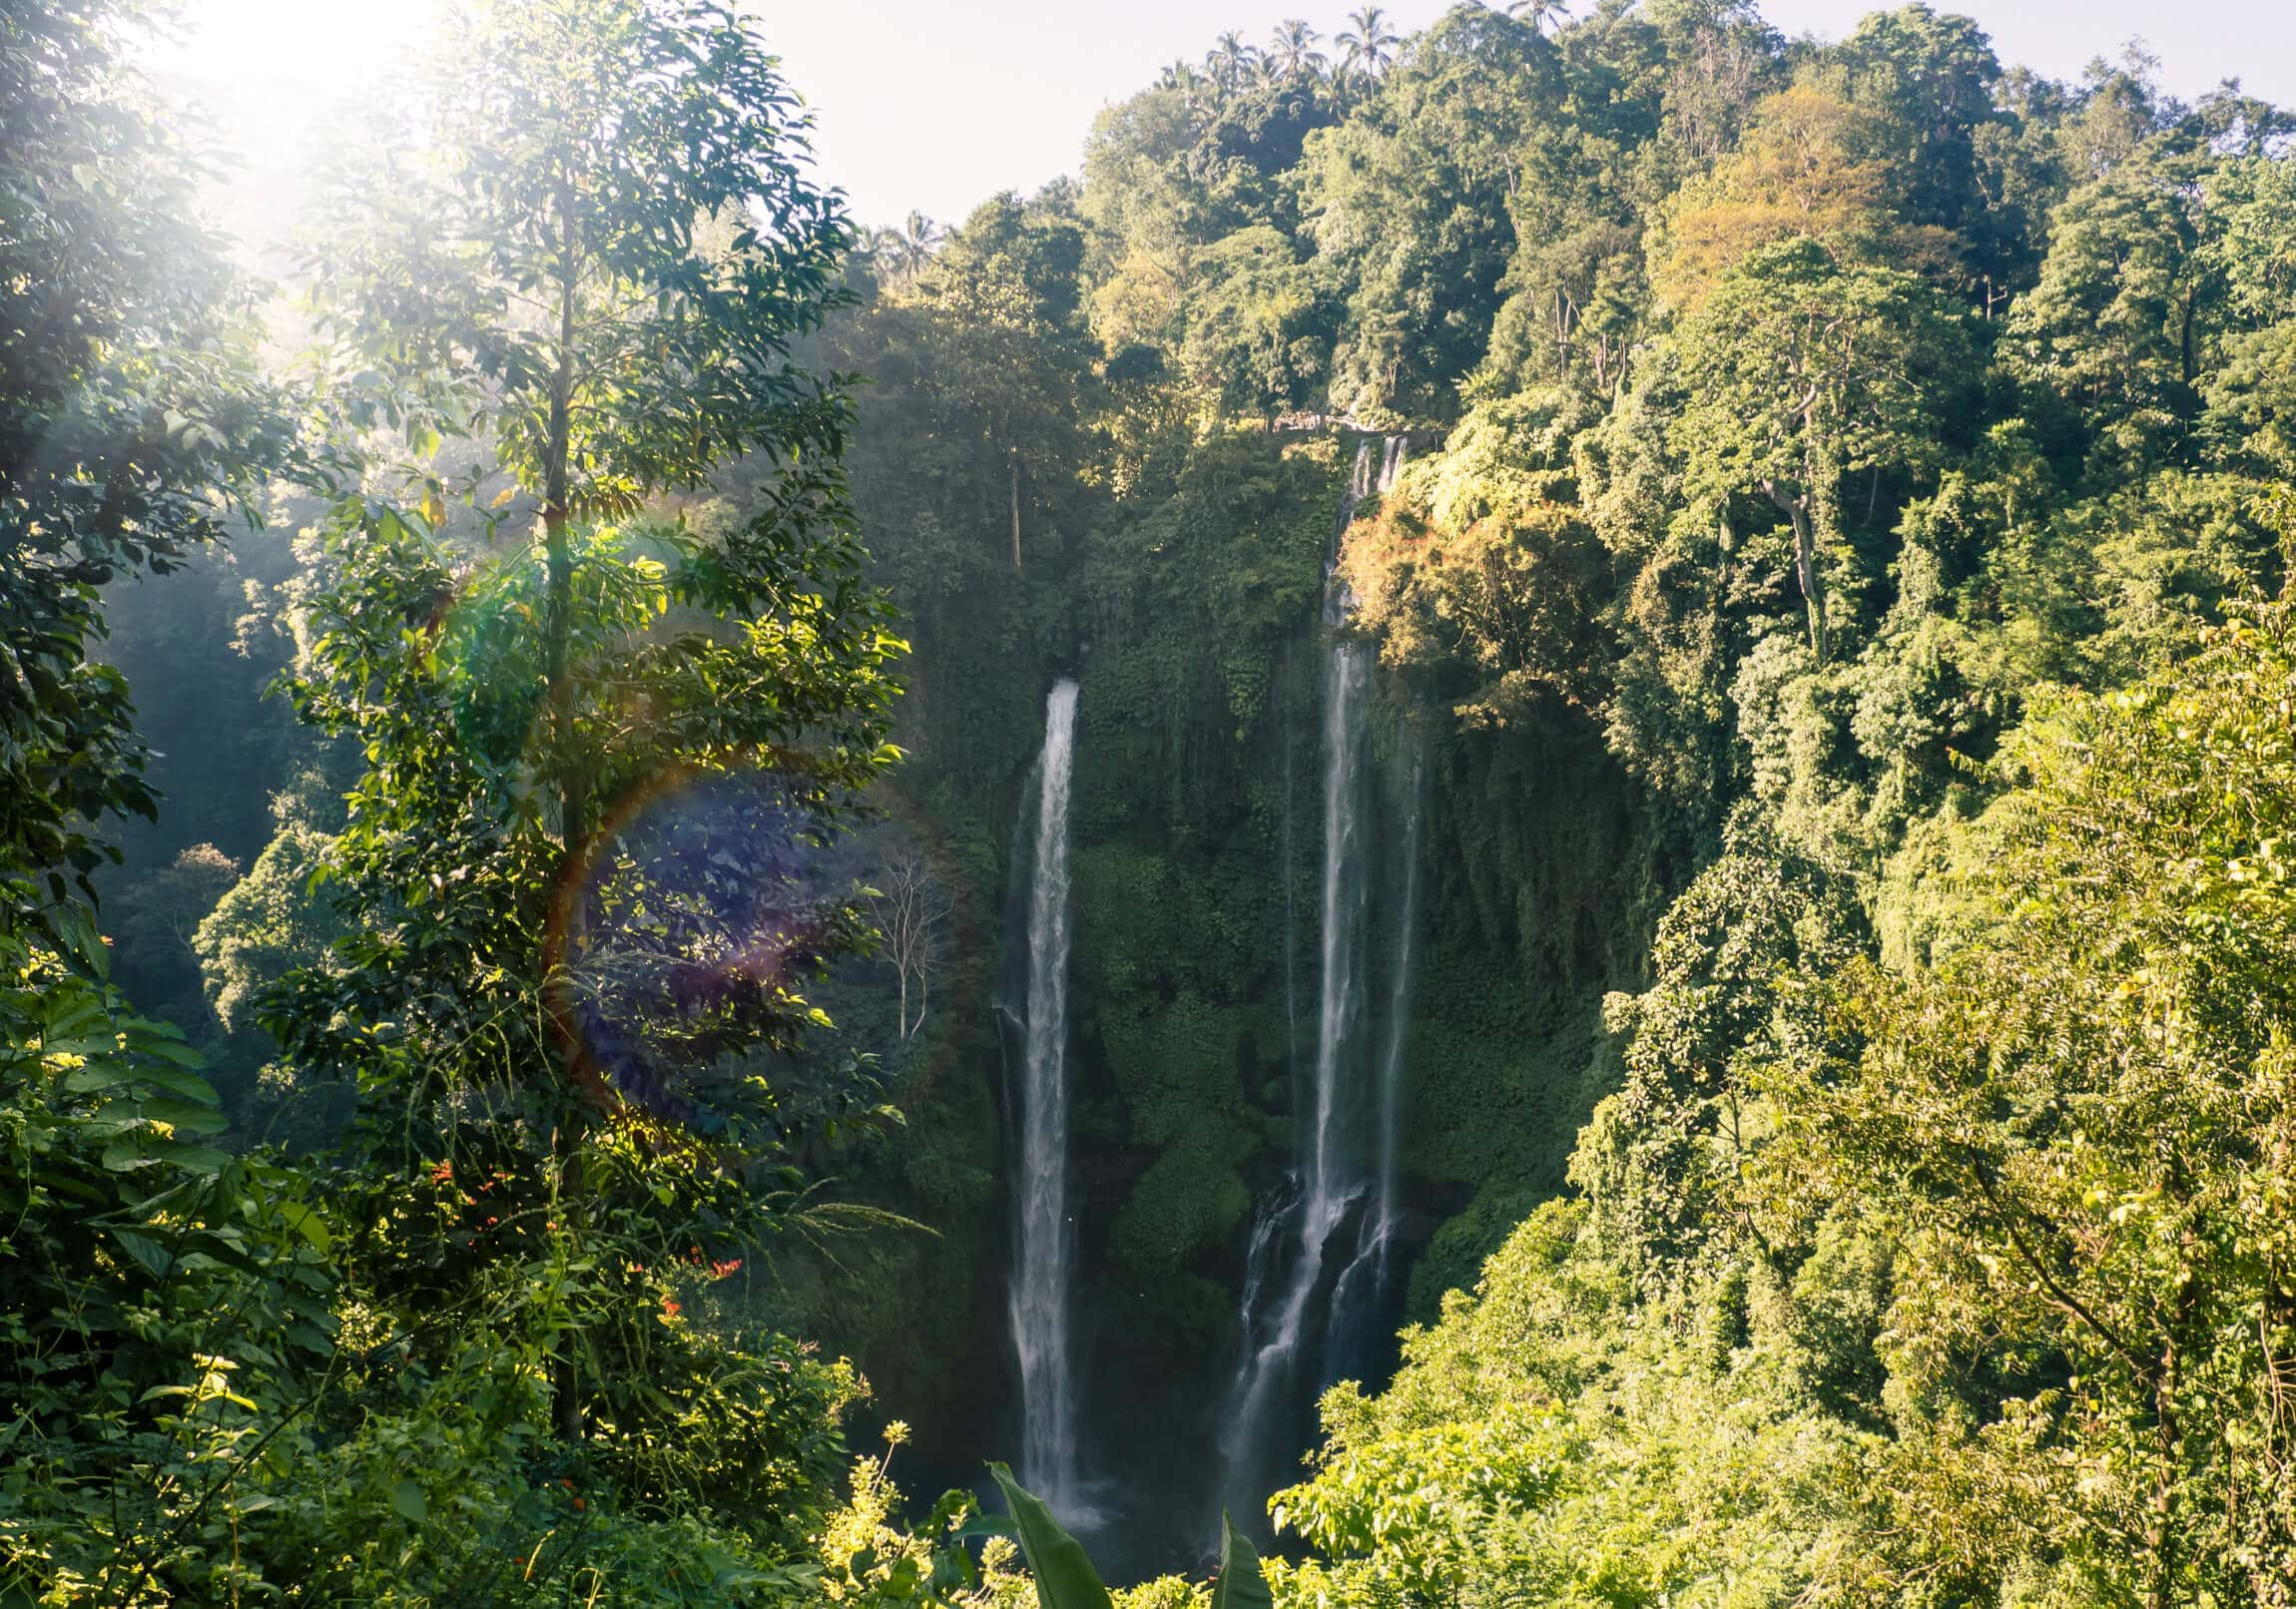 Air Terjun Sekumpul - The most beautiful waterfall in Bali. Book a tour guide or drive there by yourself - Here's how!